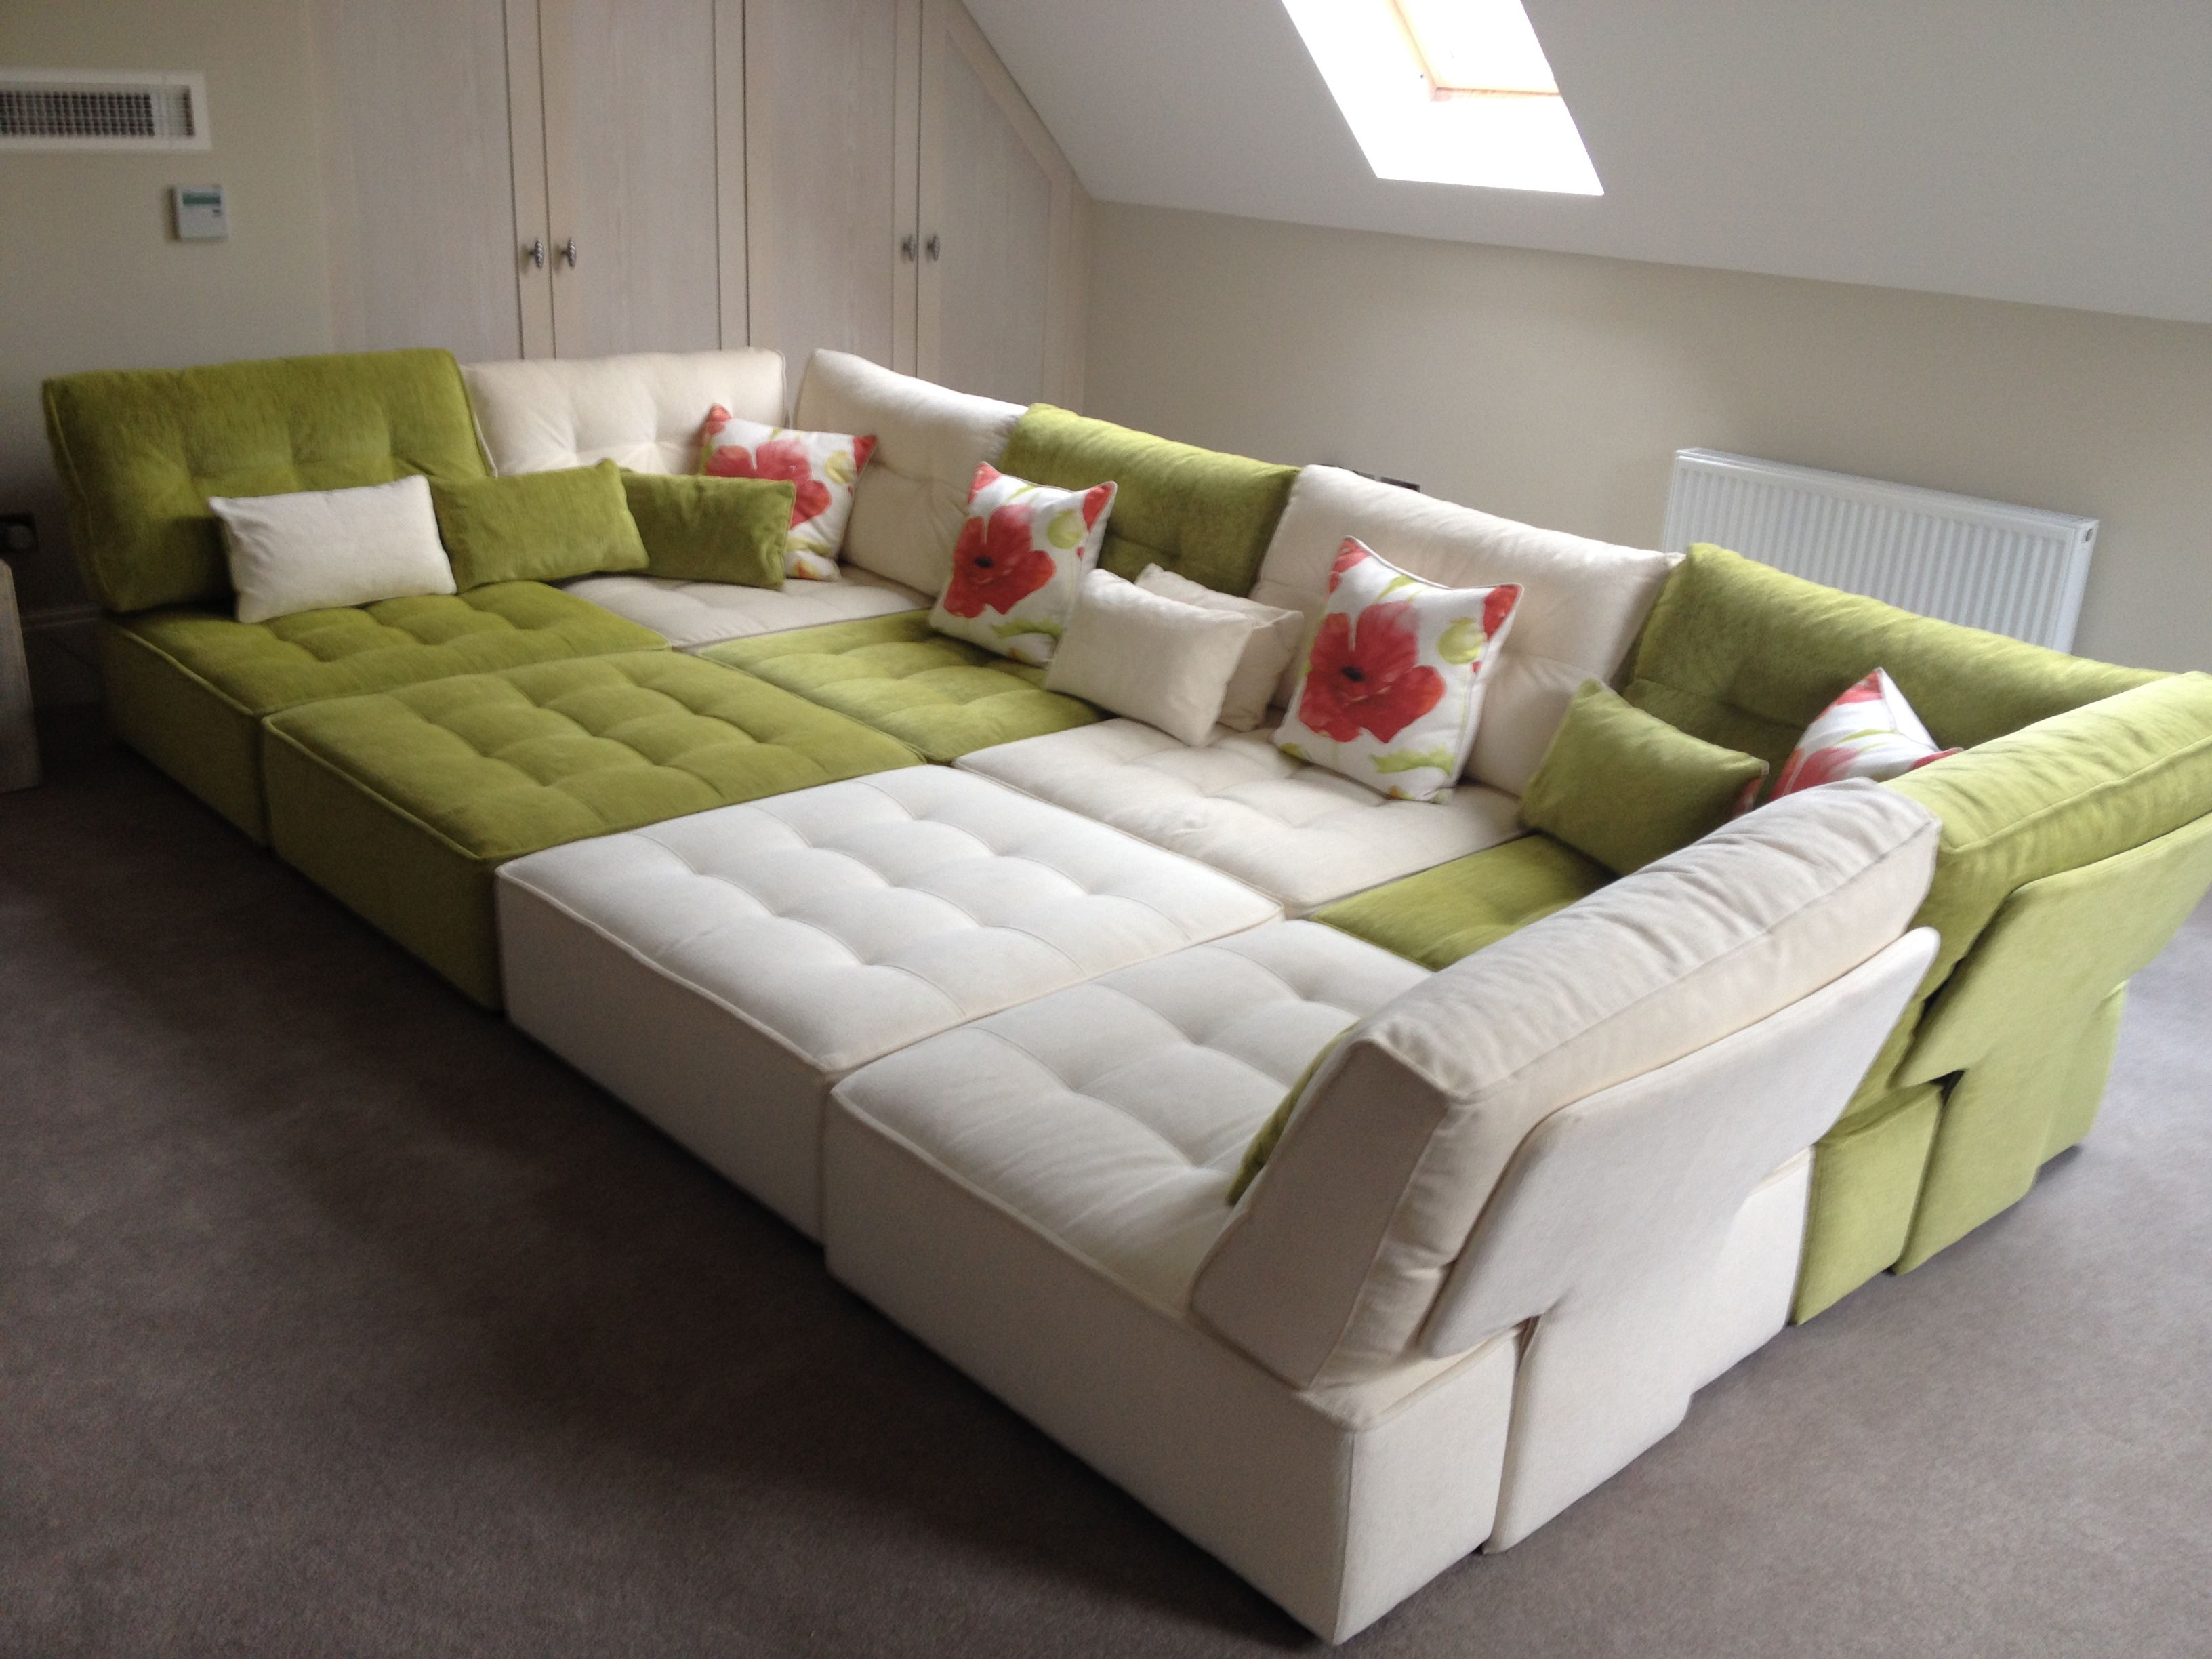 Family Room Big Space Cinema Room How About These 8 Modules Taking Up 400 Cm X 200 Cm Of Space S Cushions On Sofa Large Couch Cushions Floor Cushions